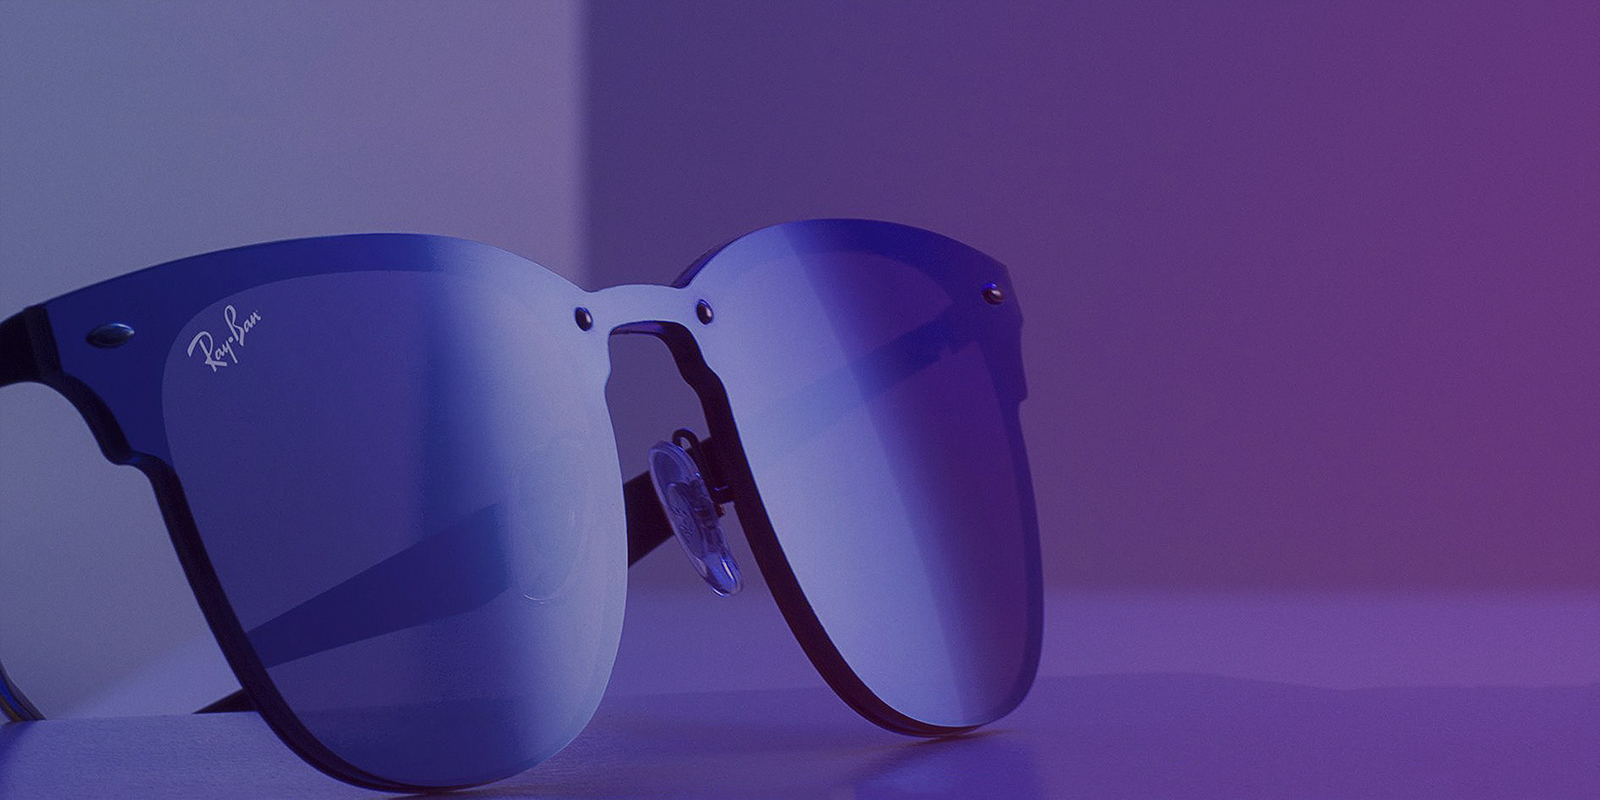 a8ab020ee7eb7 Ray-Ban site redesign. Ray-Ban